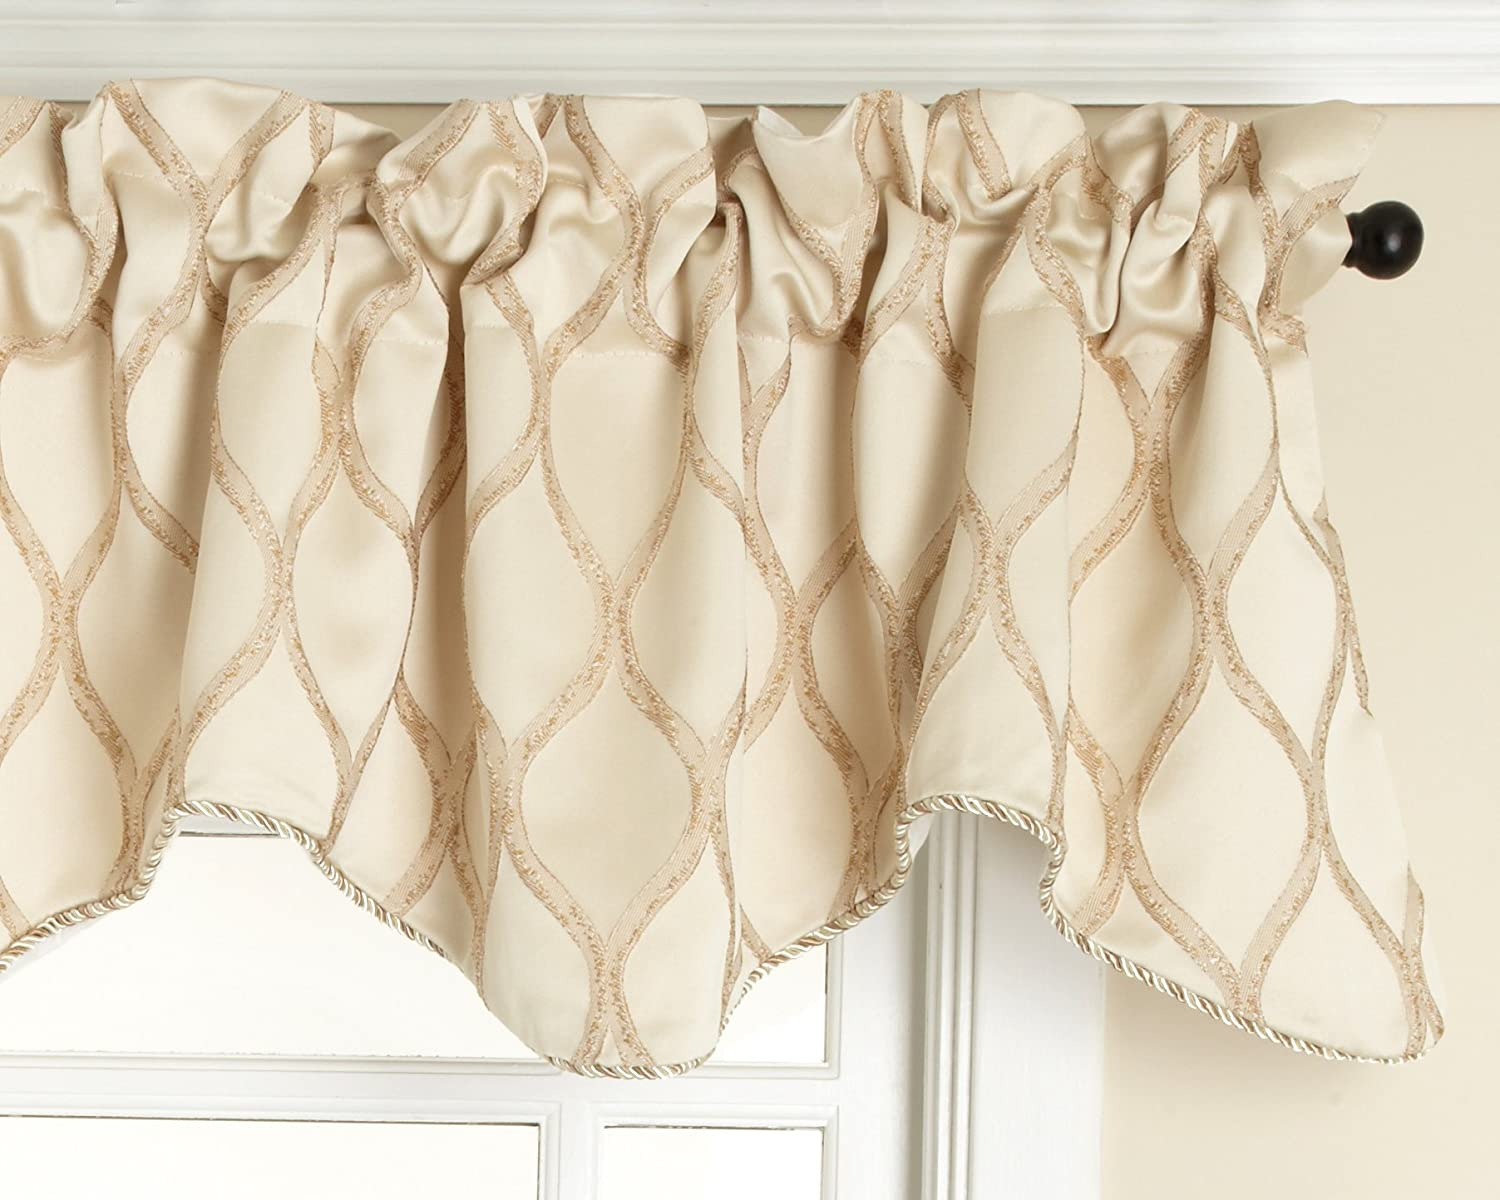 Style Master Renaissance Home Fashion Raven Embroidered Lined Scalloped Valance with Cording, Champagne, 50 by 17-Inch